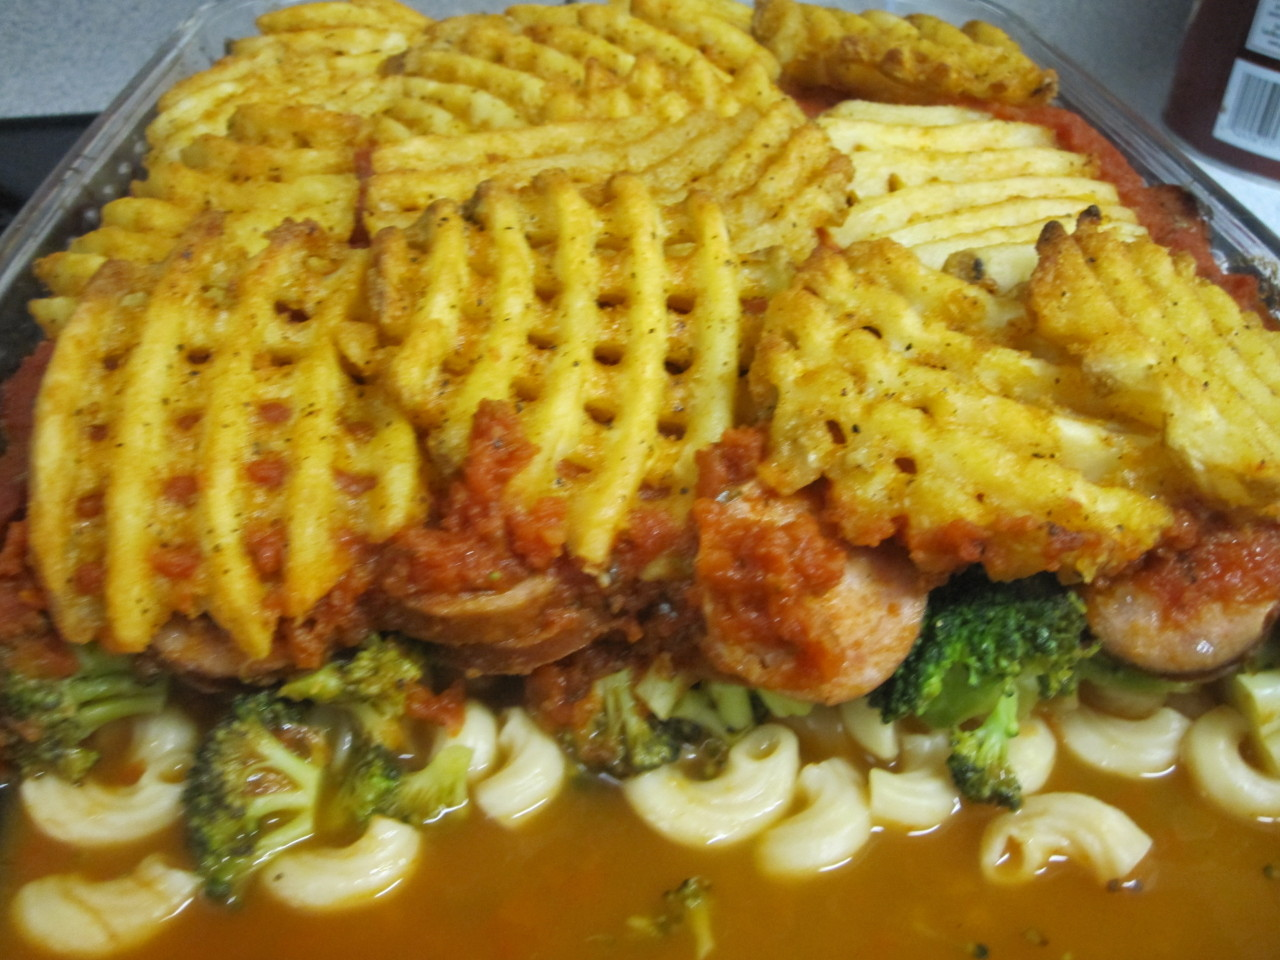 Waffle fry casserole. We do live near a Chick-Fil-A but it was Sunday. Yeah… My husband decided to make this delightful casserole with Kielbasa sausage, broccoli florets, marinara sauce, and macaroni pasta. Topped with seasoned waffle fries. I'm getting hungry just typing this out! It was really really really good!